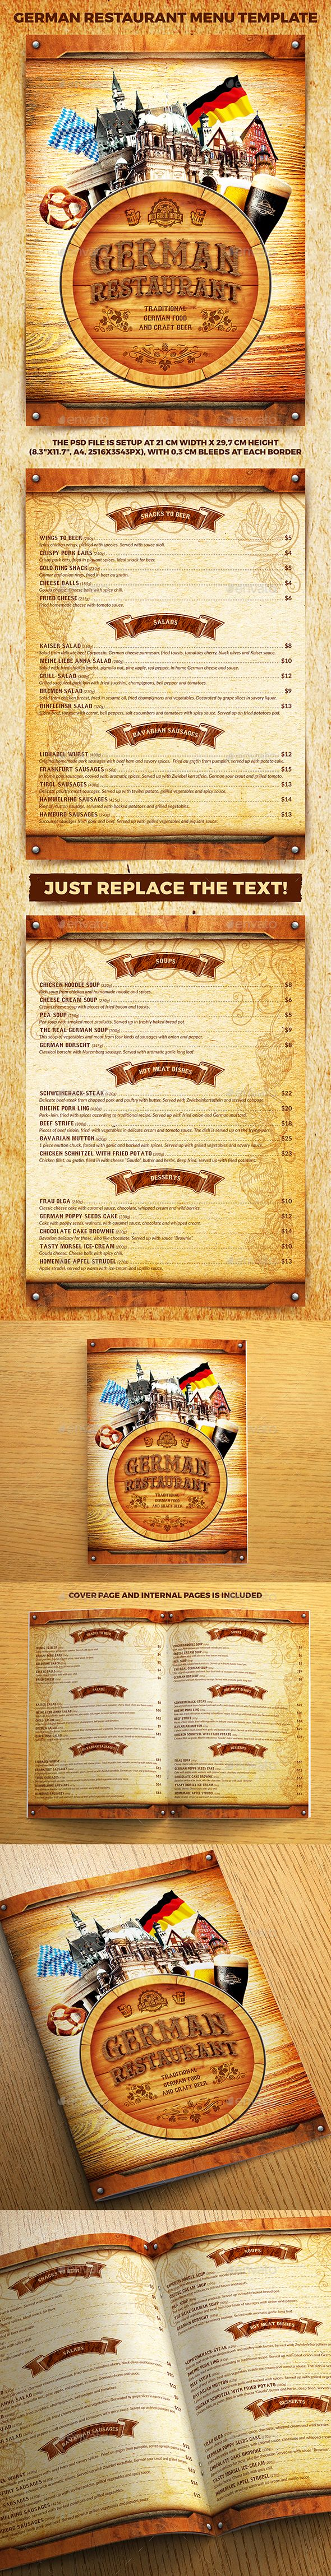 German Restaurant Menu Template PSD German Restaurant